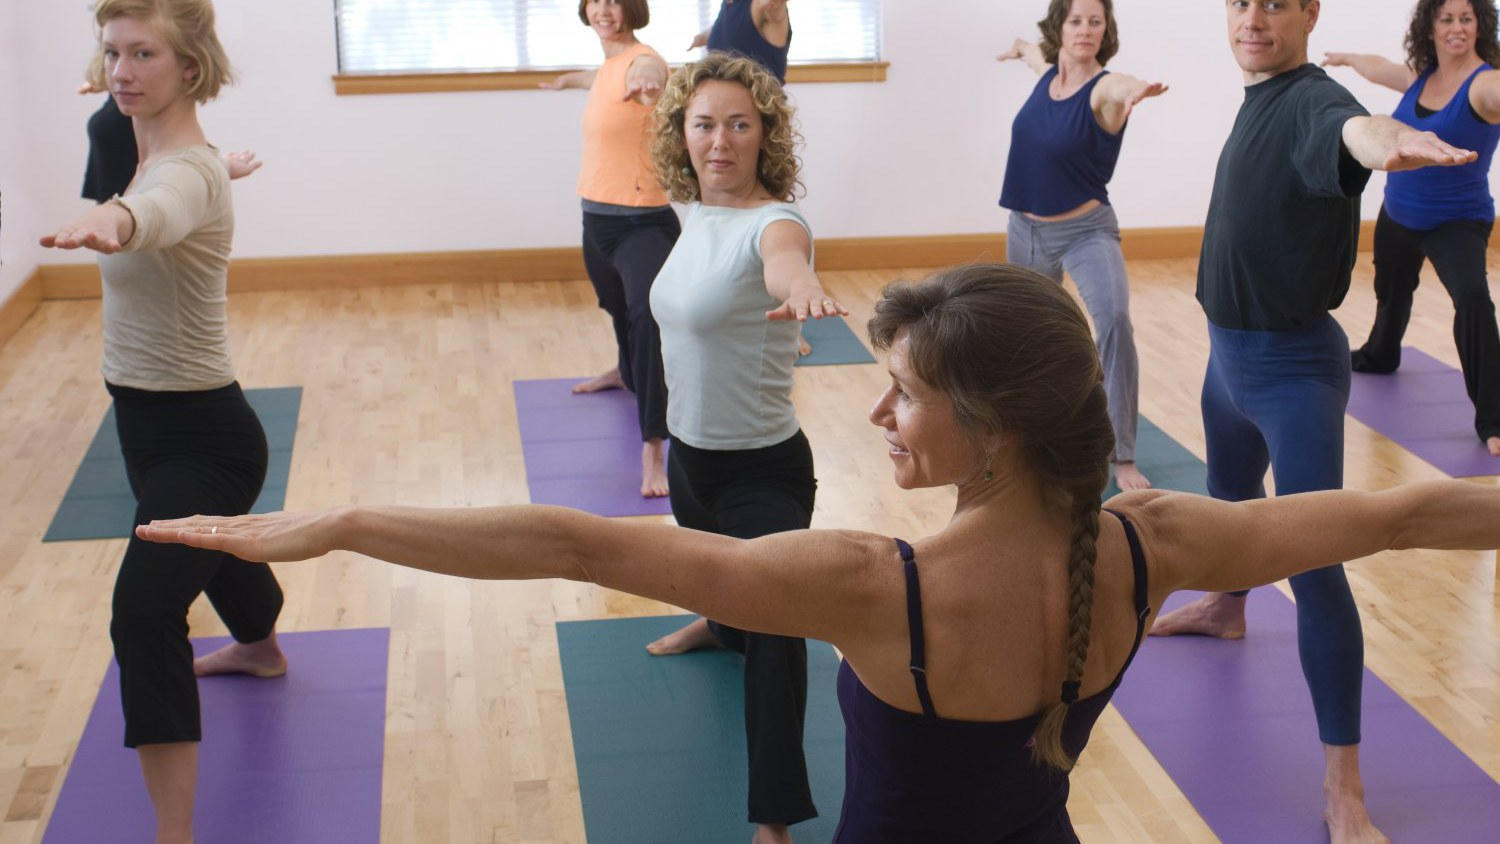 Yoga class, teaching yoga, tips for teachers